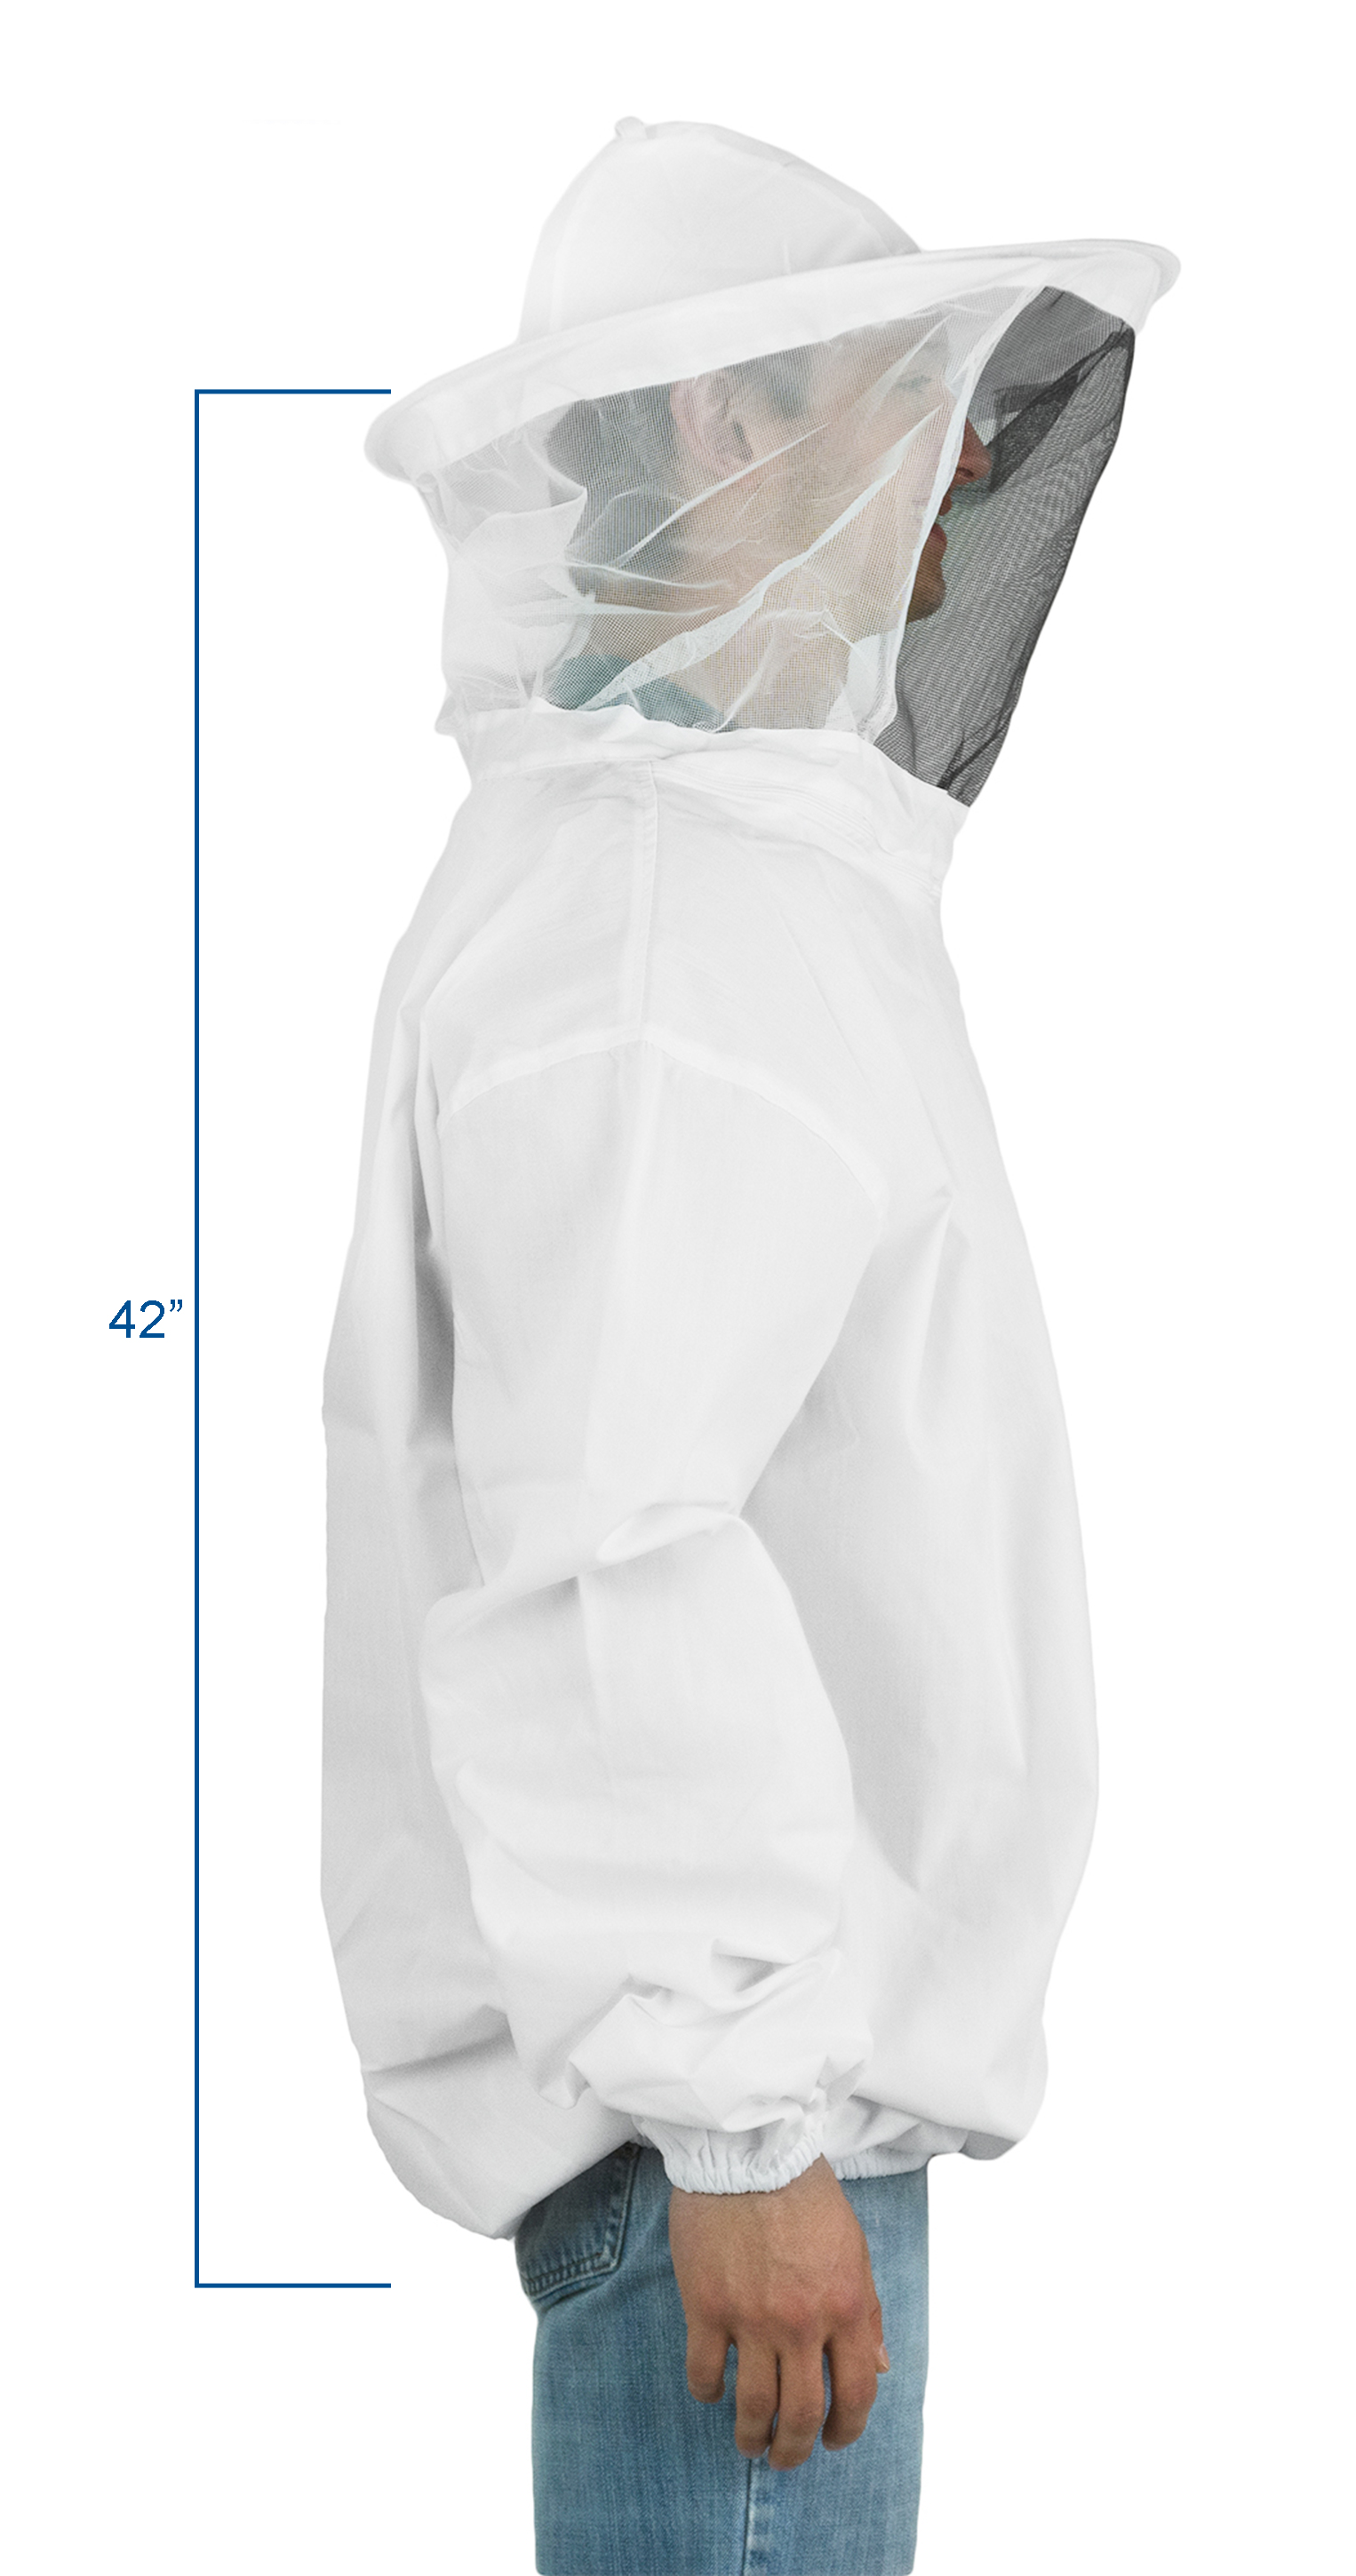 Protective Beekeeping Jacket Veil Bee Suit Hat Pull Over Smock Suits White